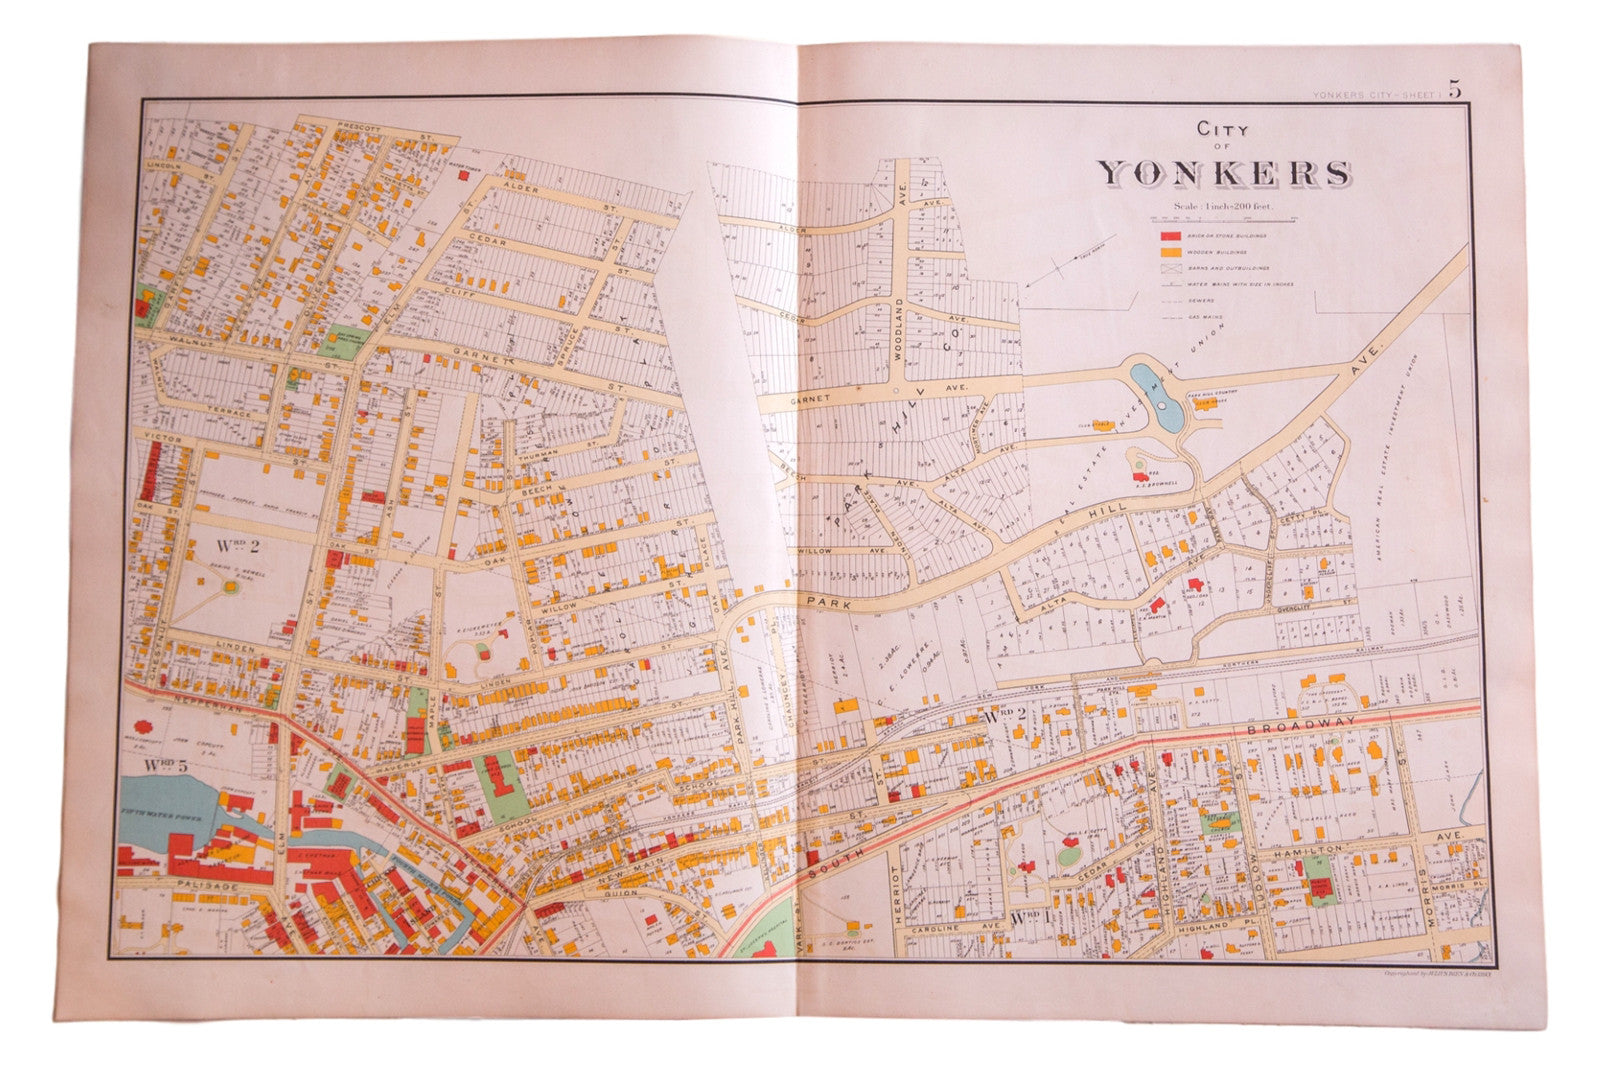 Antique Yonkers City Map on richfield springs map, stuyvesant map, staten island map, suffolk counties map, cornwall-on-hudson map, east ramapo map, rondout valley map, wawayanda map, new york map, white plains map, tarrytown train station map, rowayton map, fairport map, clason point map, yaphank map, lakewood map, westchester map, tioga downs map, whitestone map, queens museum map,